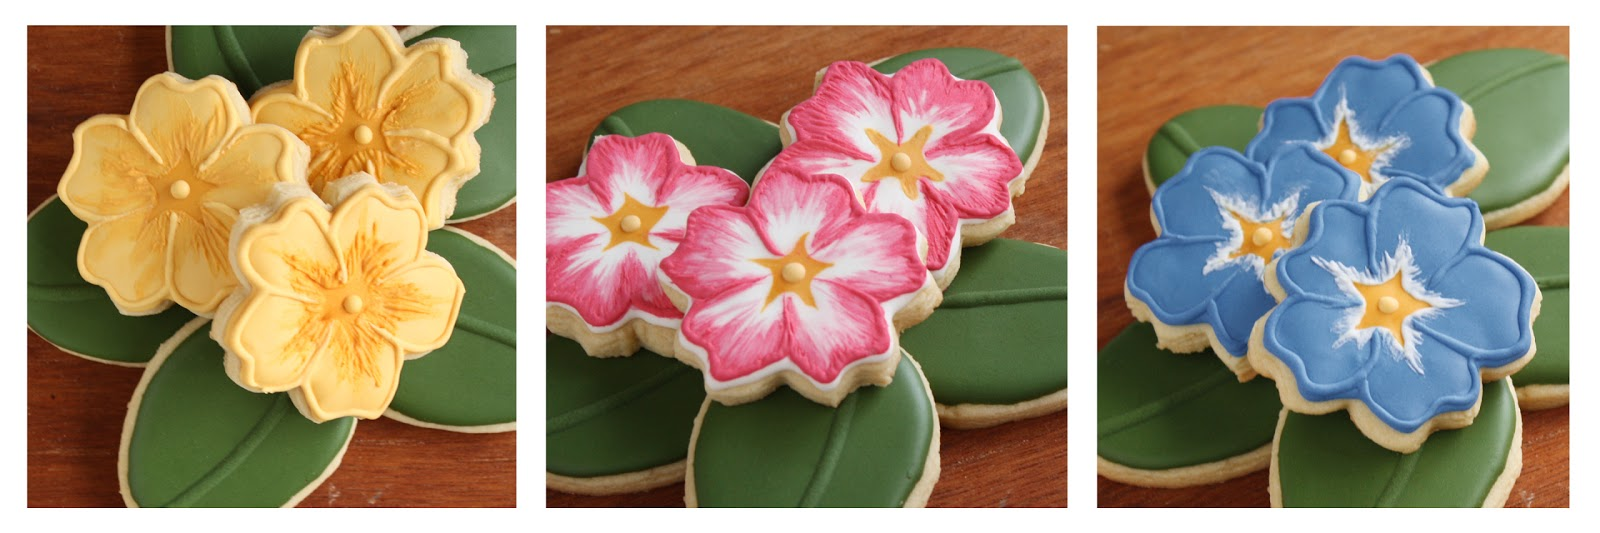 iced sugar cookies that look like primrose flowers